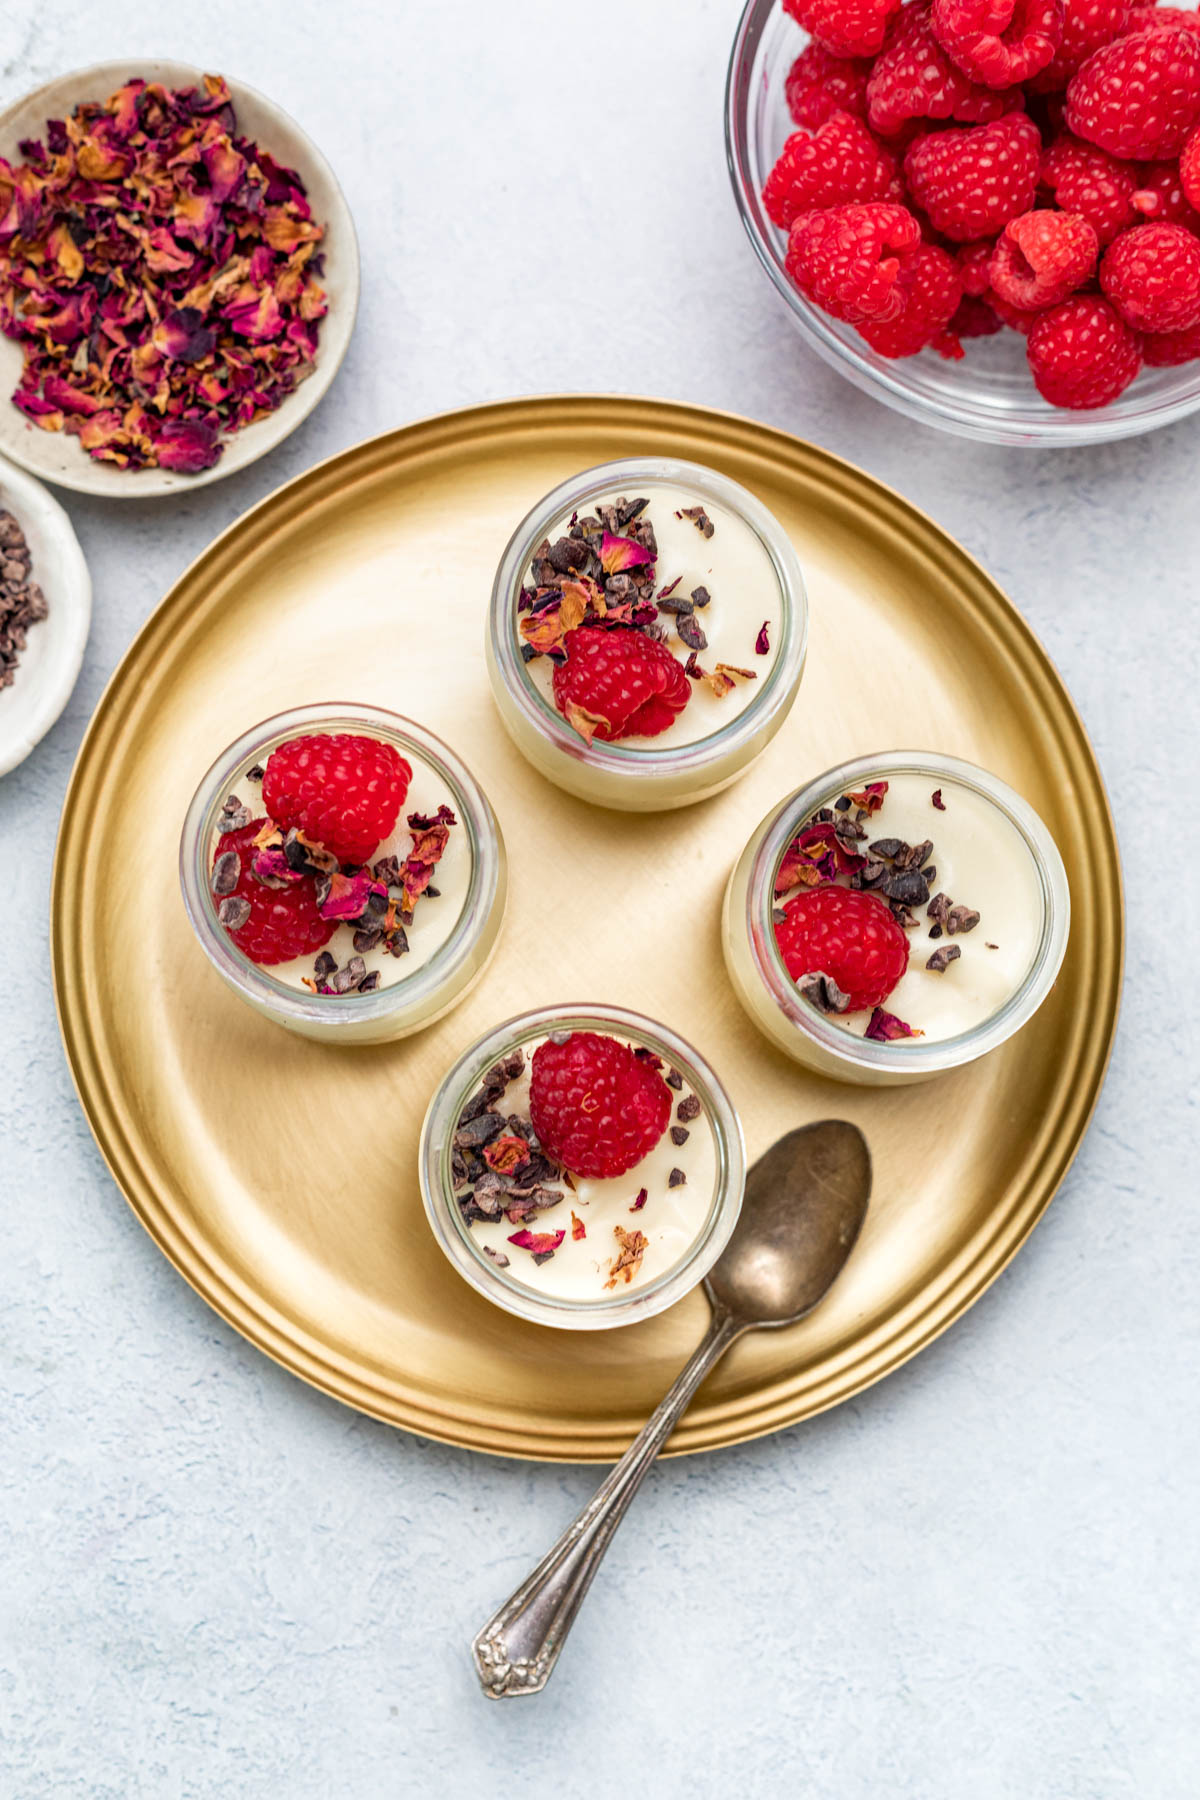 Overhead image of jars of desserts garnished with cacao nibs, raspberries, and dried rose petals on top.